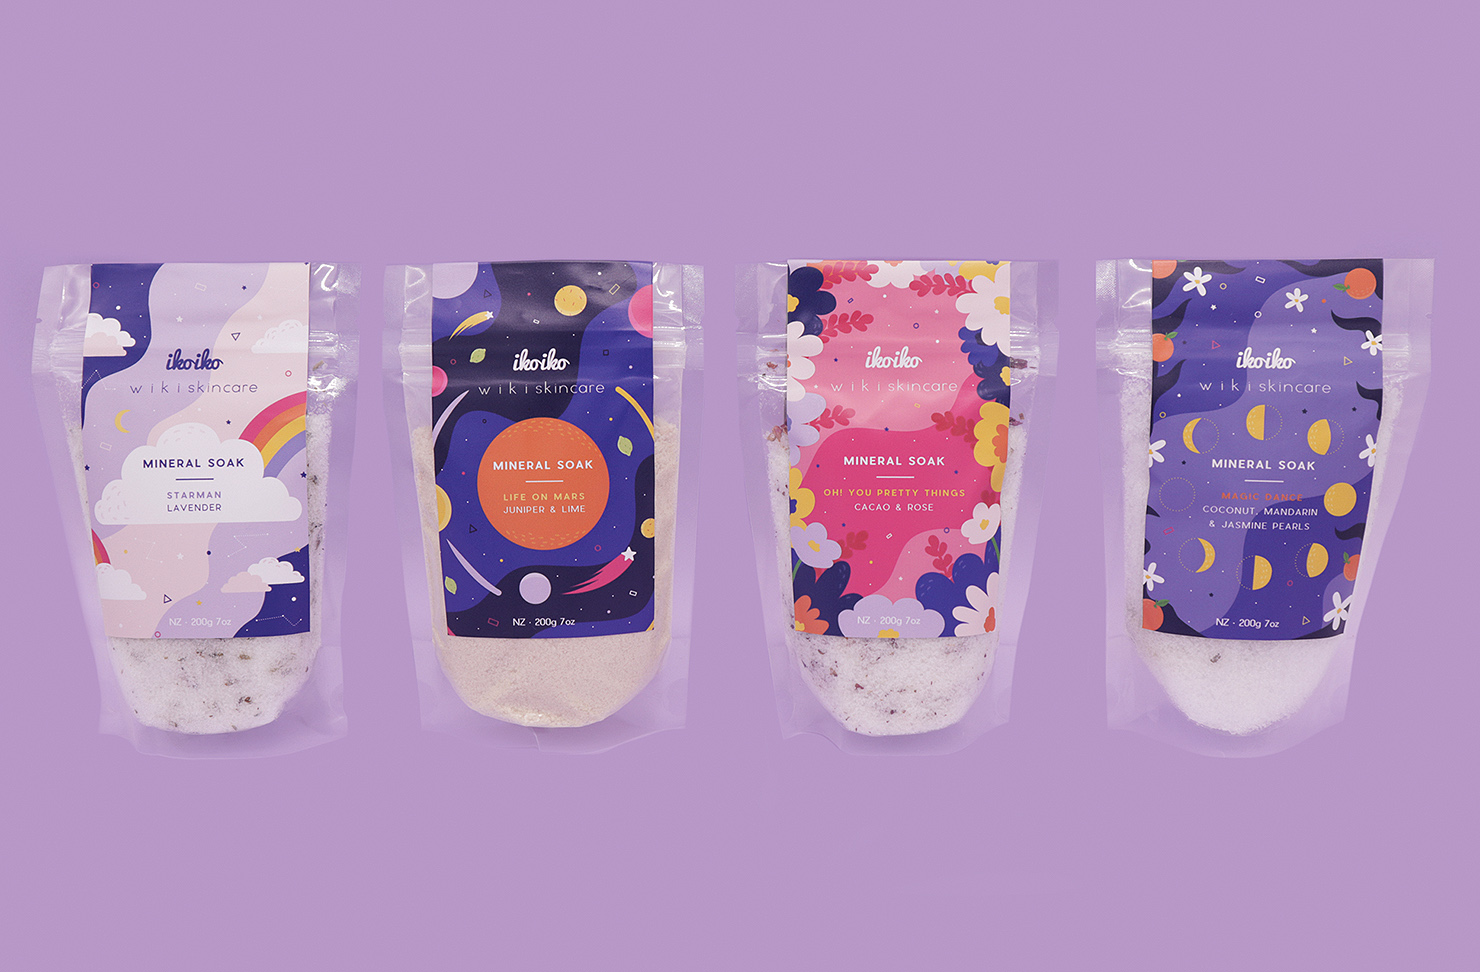 A beautiful pack of bath salts fragranced with rose and cacao